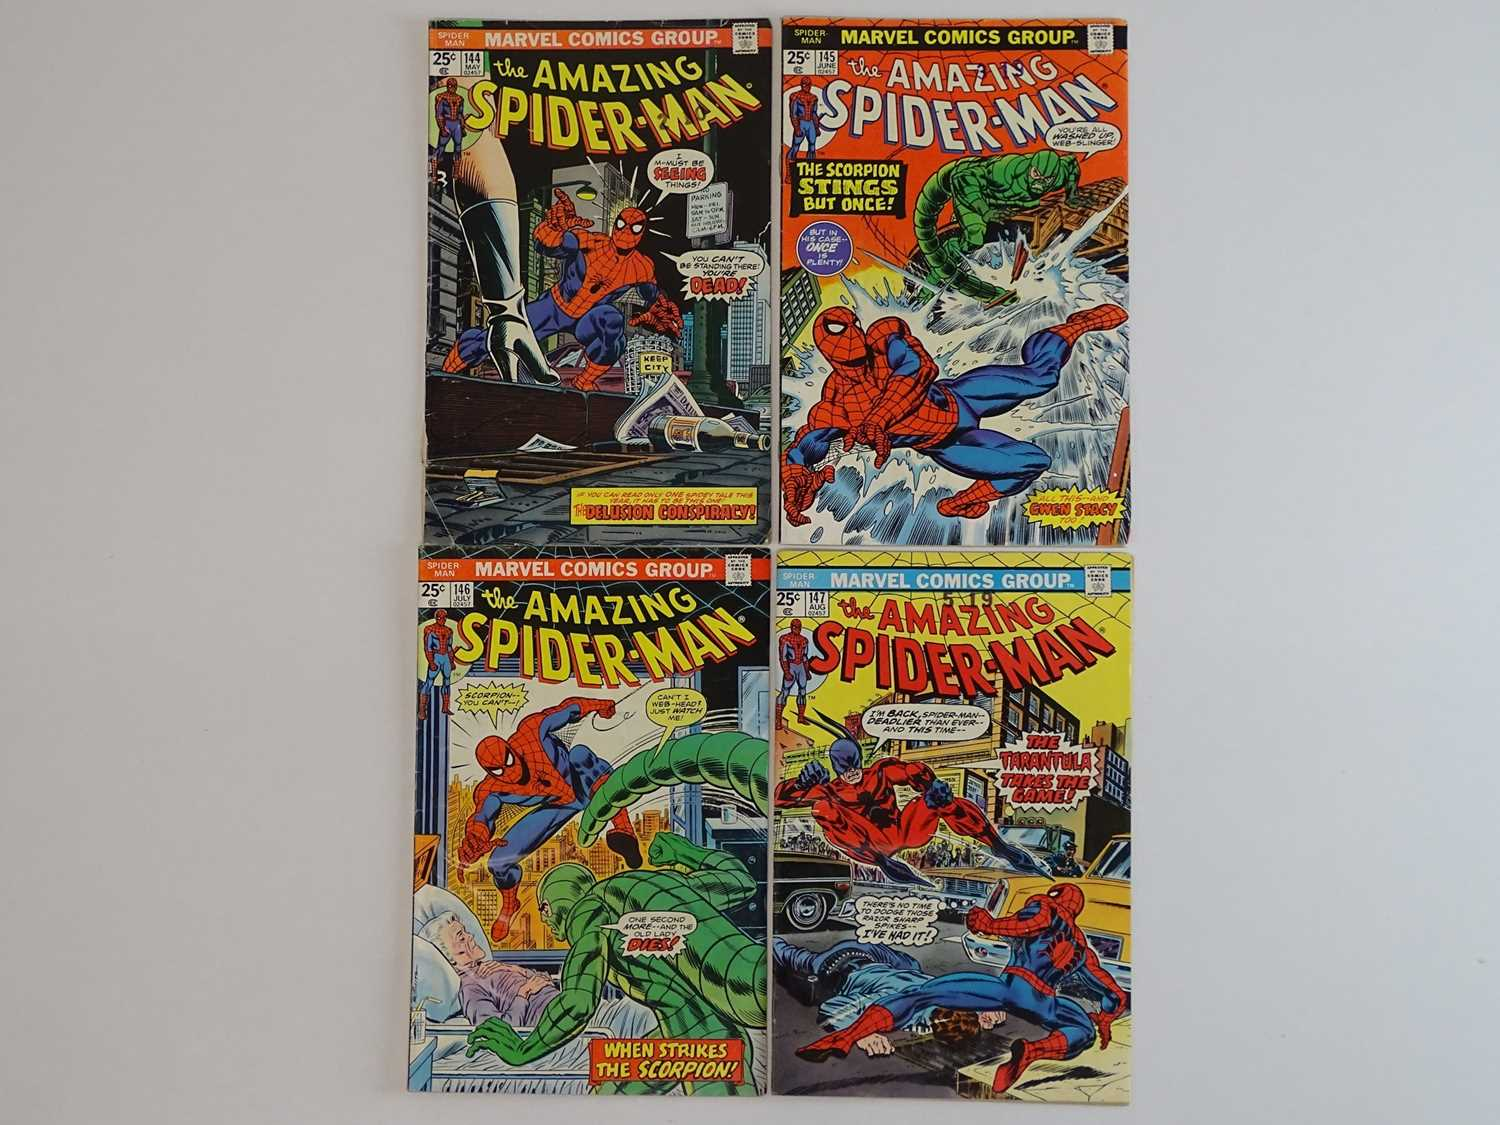 AMAZING SPIDER-MAN #144, 145, 146, 147 - (4 in Lot) - (1975 - MARVEL) - Includes First appearance